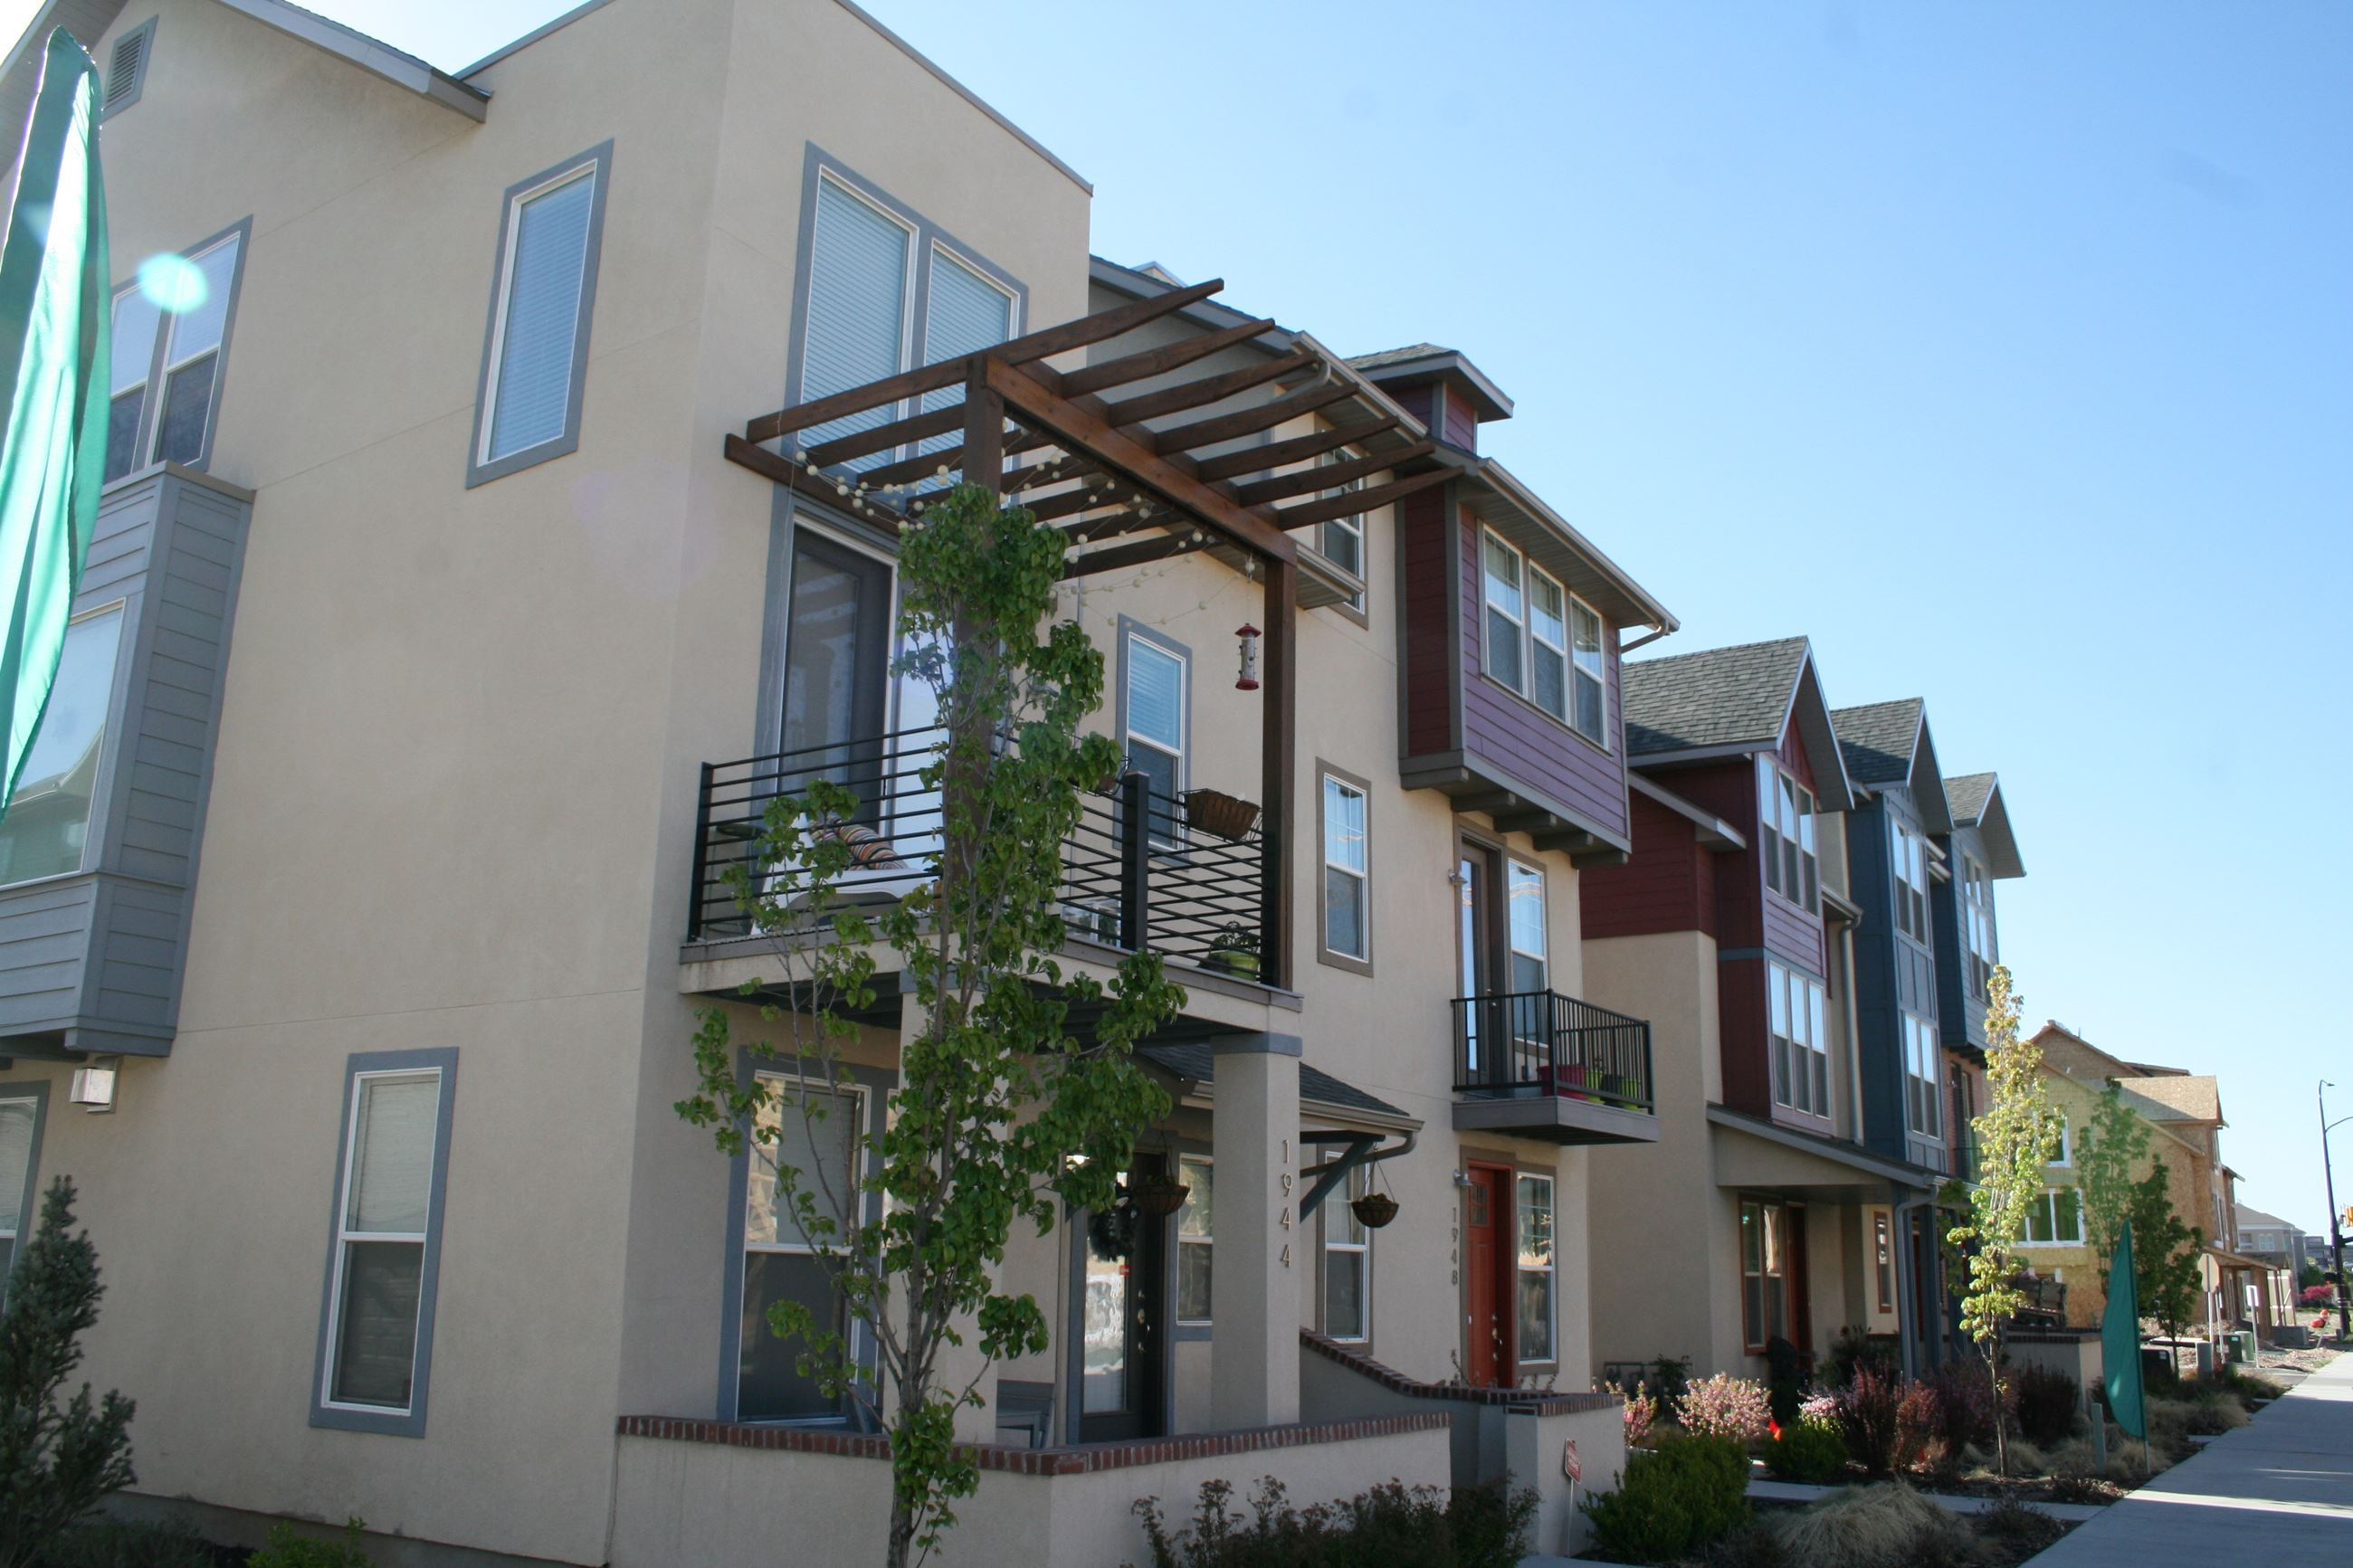 Riverbend Townhomes